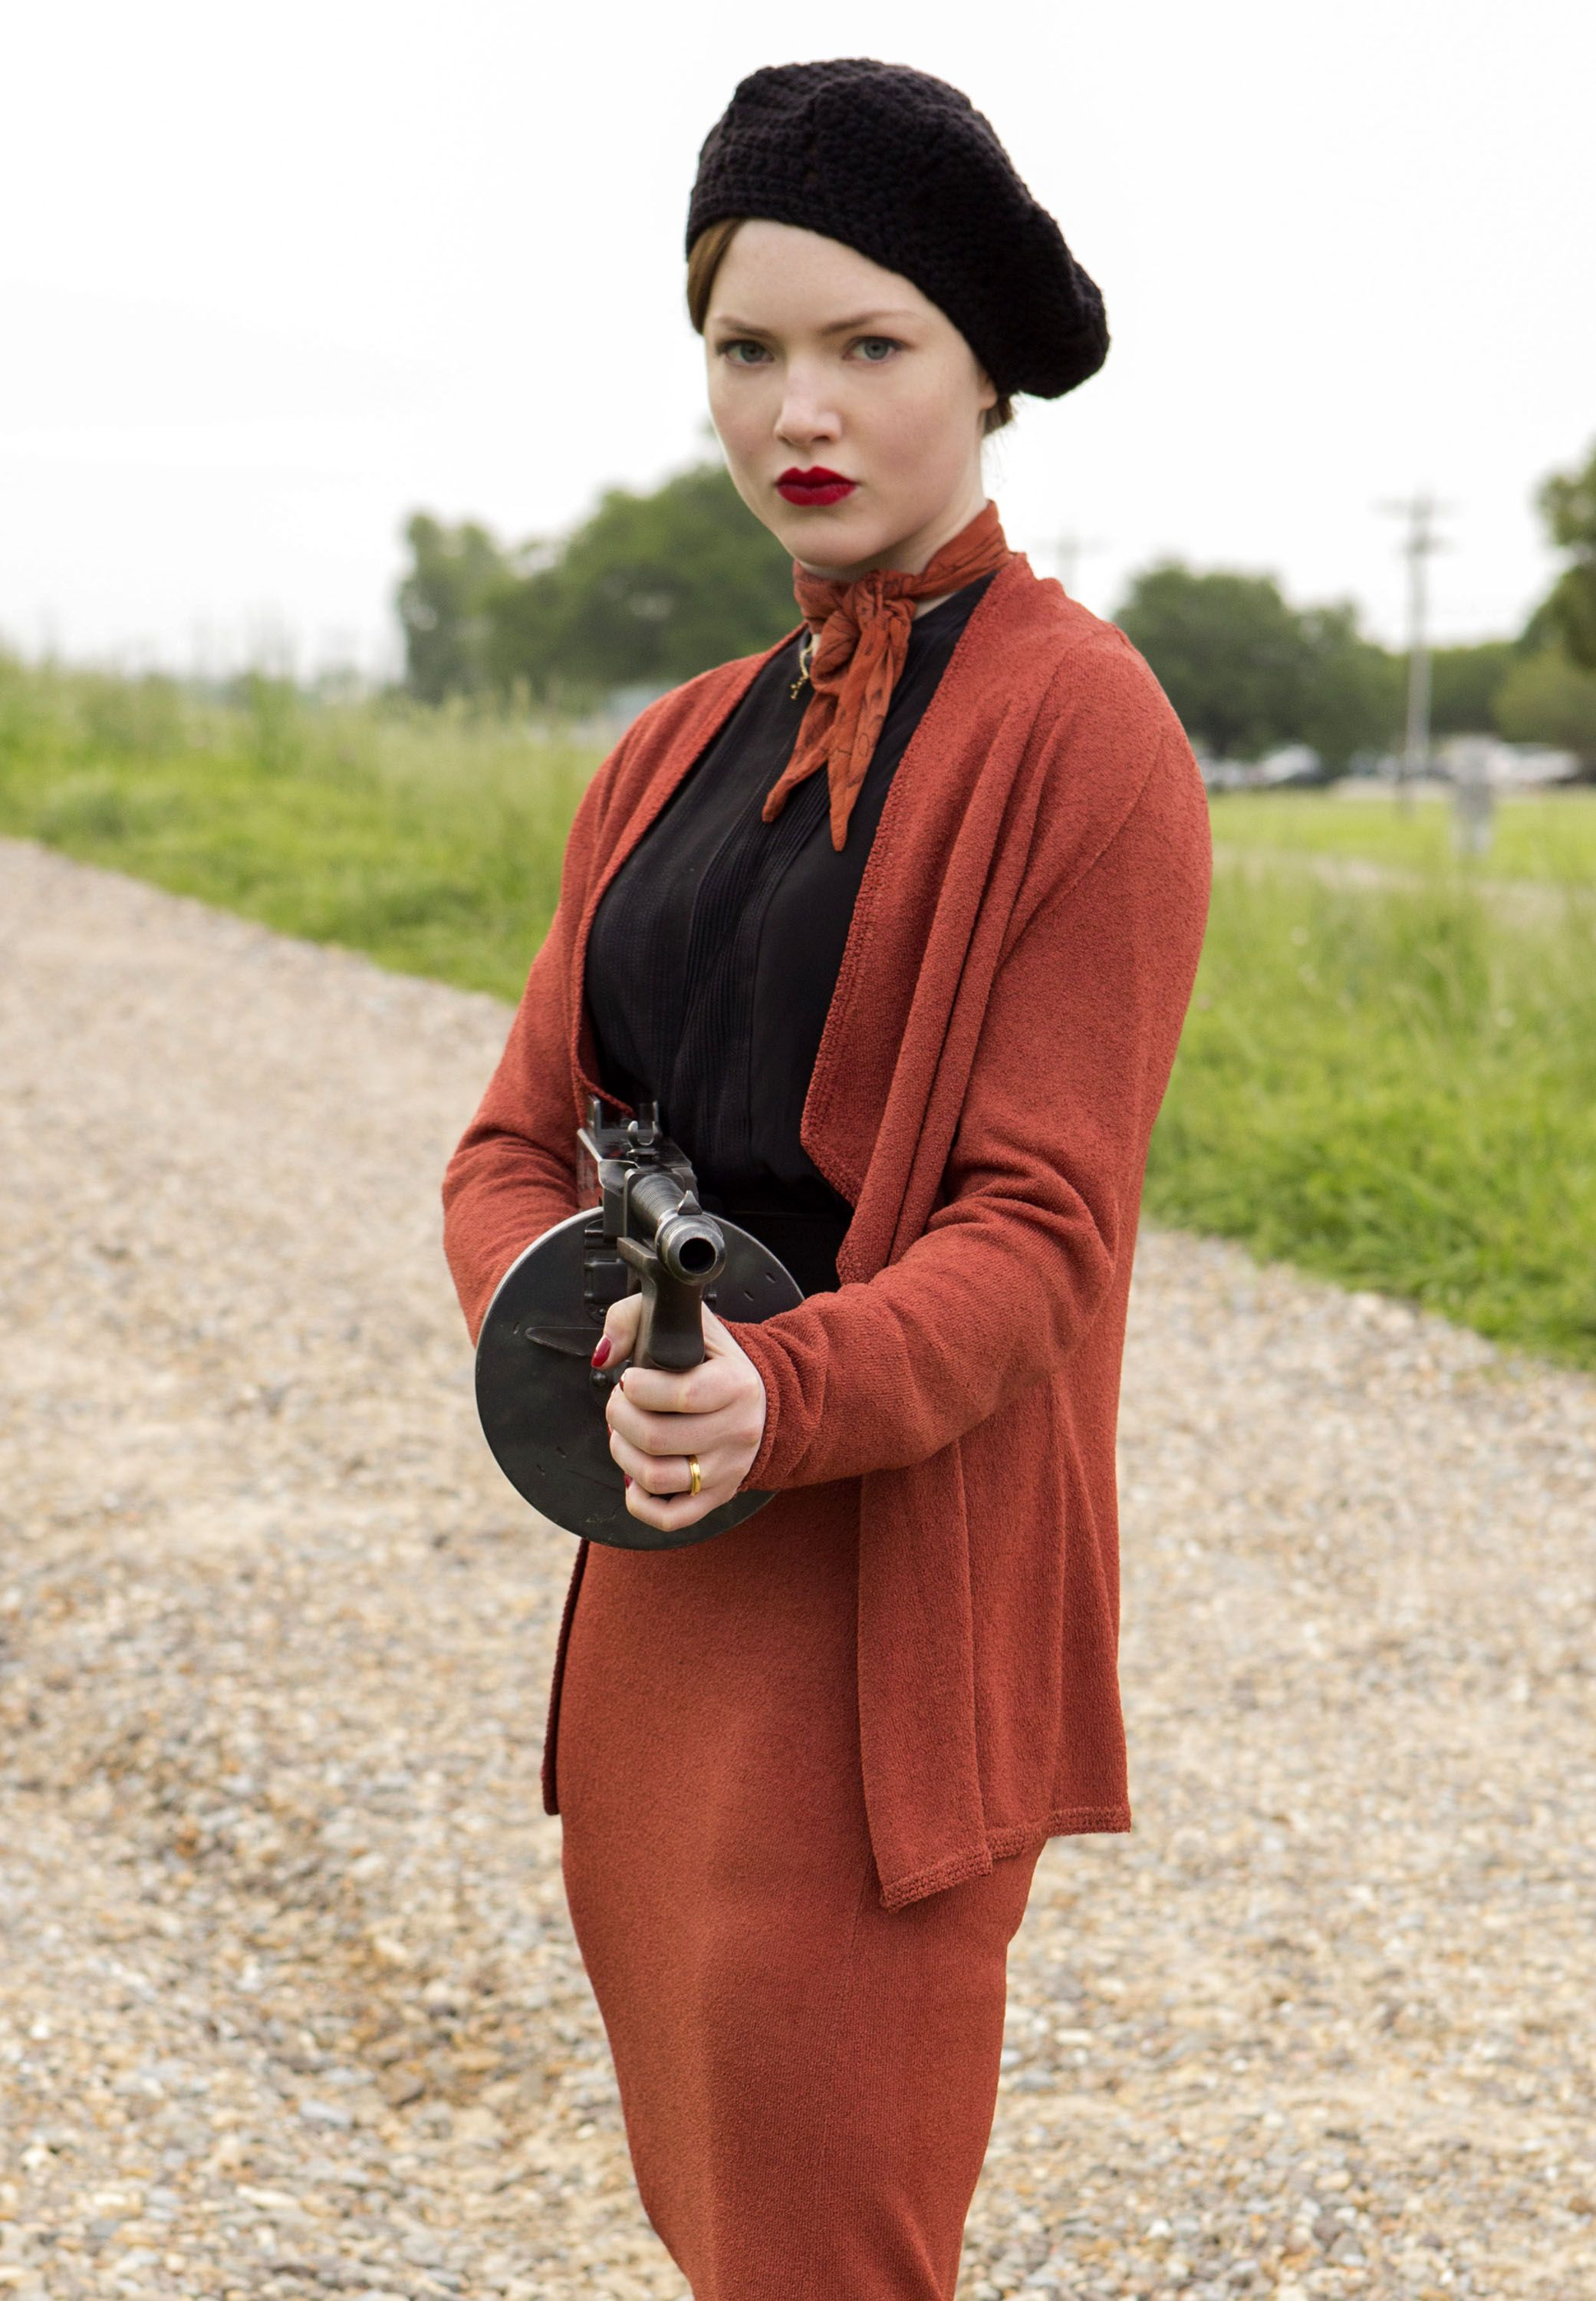 holliday grainger bonnie | Bonnie and clyde costume ...